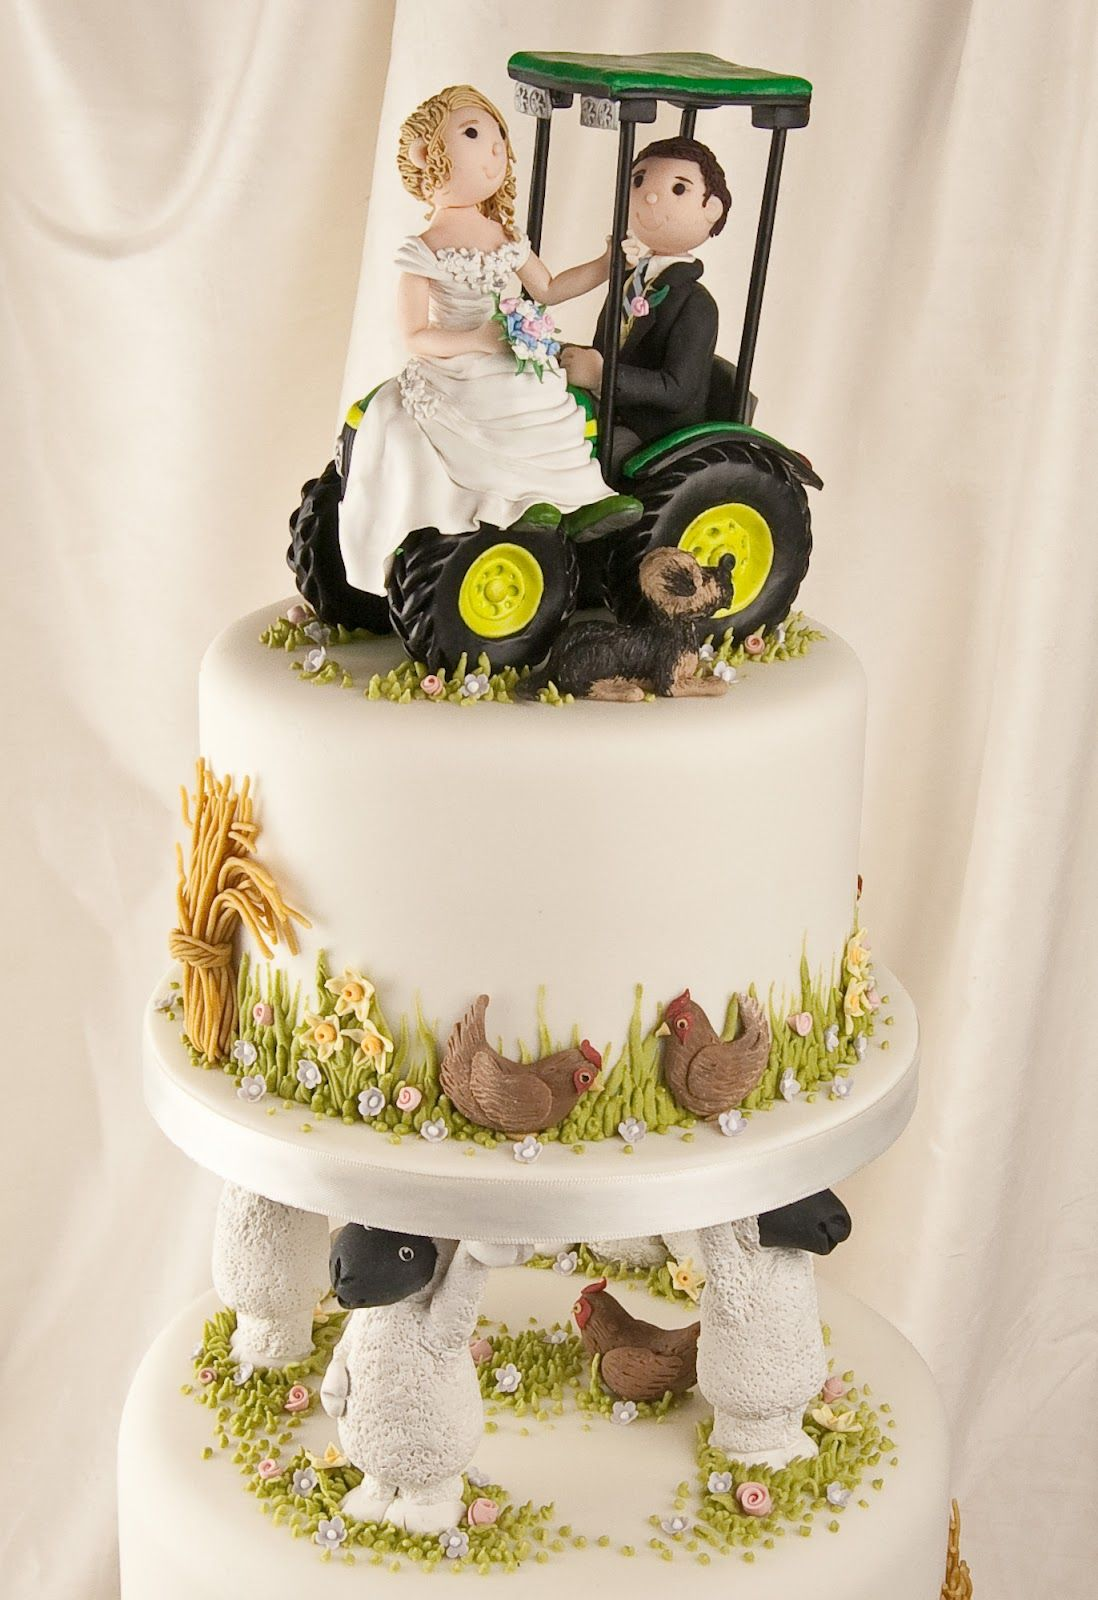 Pin by Marie Flaherty on wedding | Pinterest | Wedding cake, Cake ...